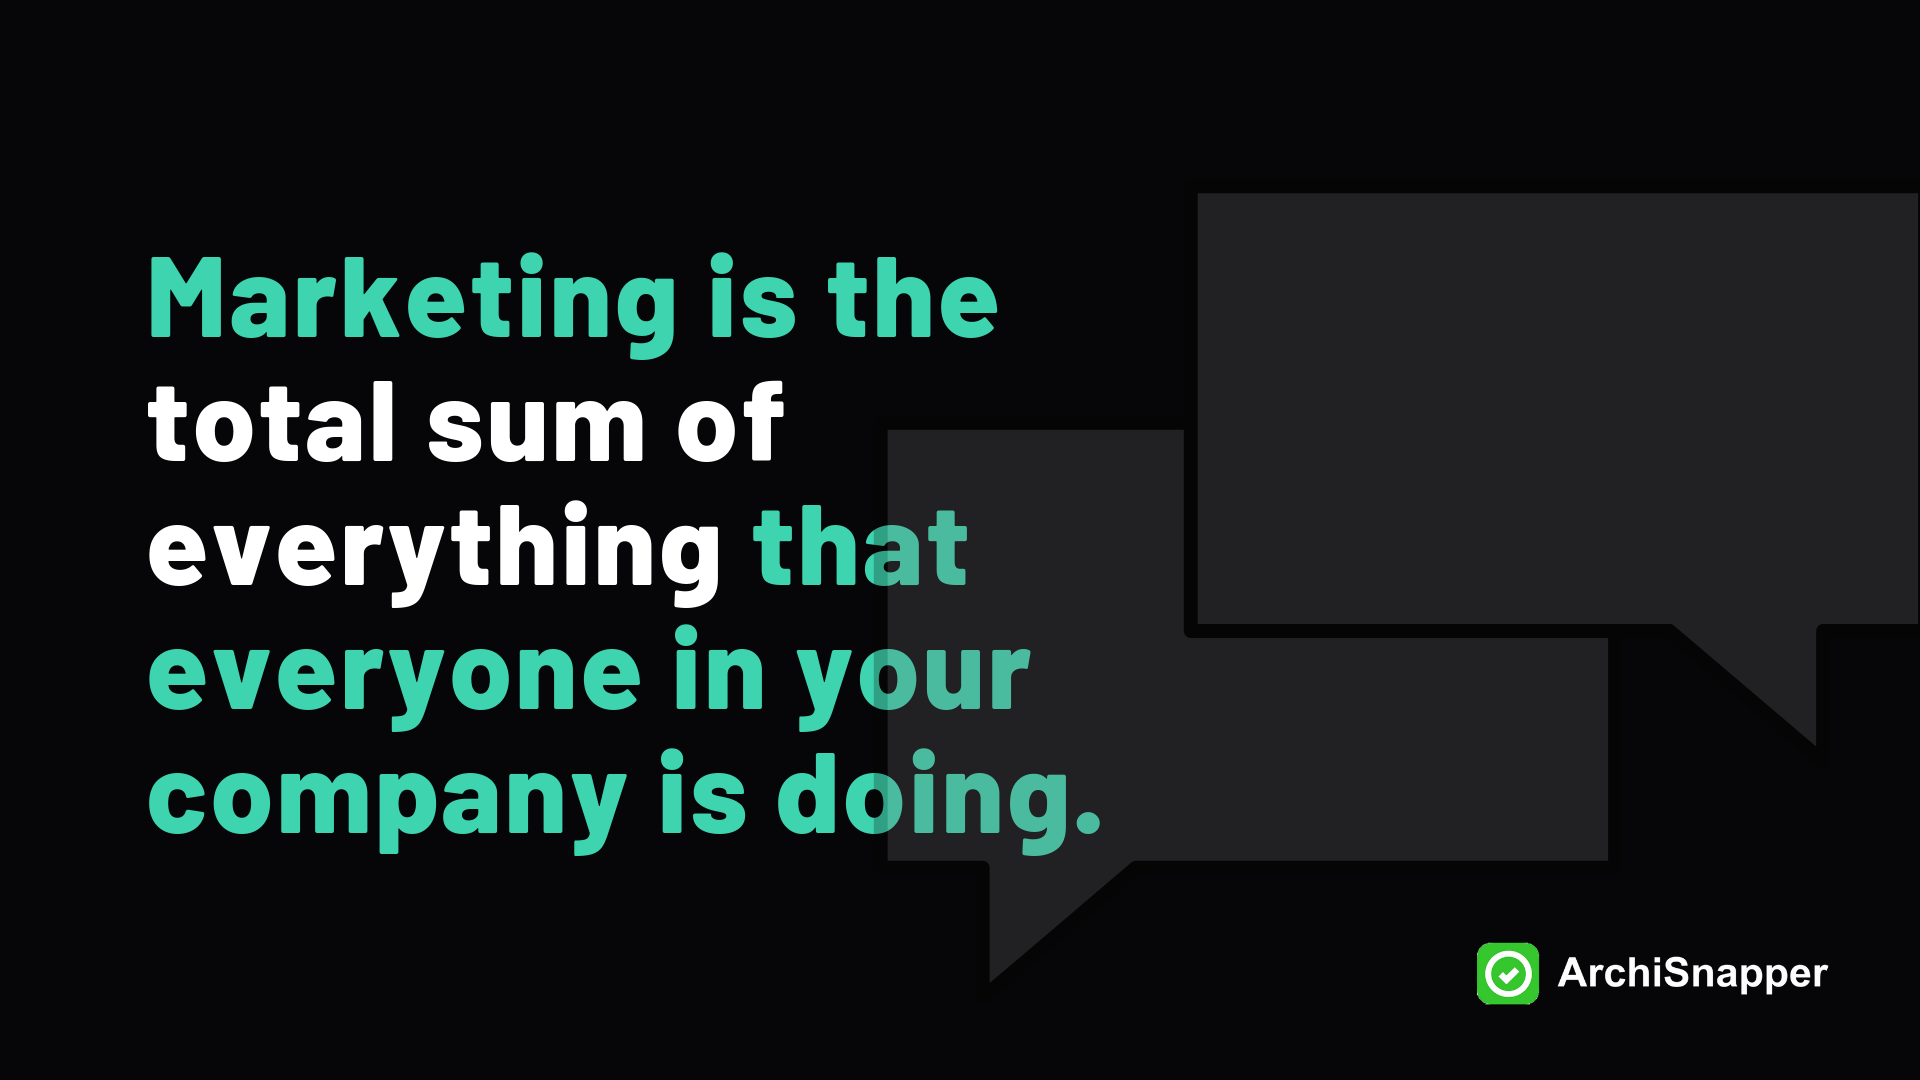 Marketing is the total sum of everything that everyone in your company is doing | ArchiSnapper